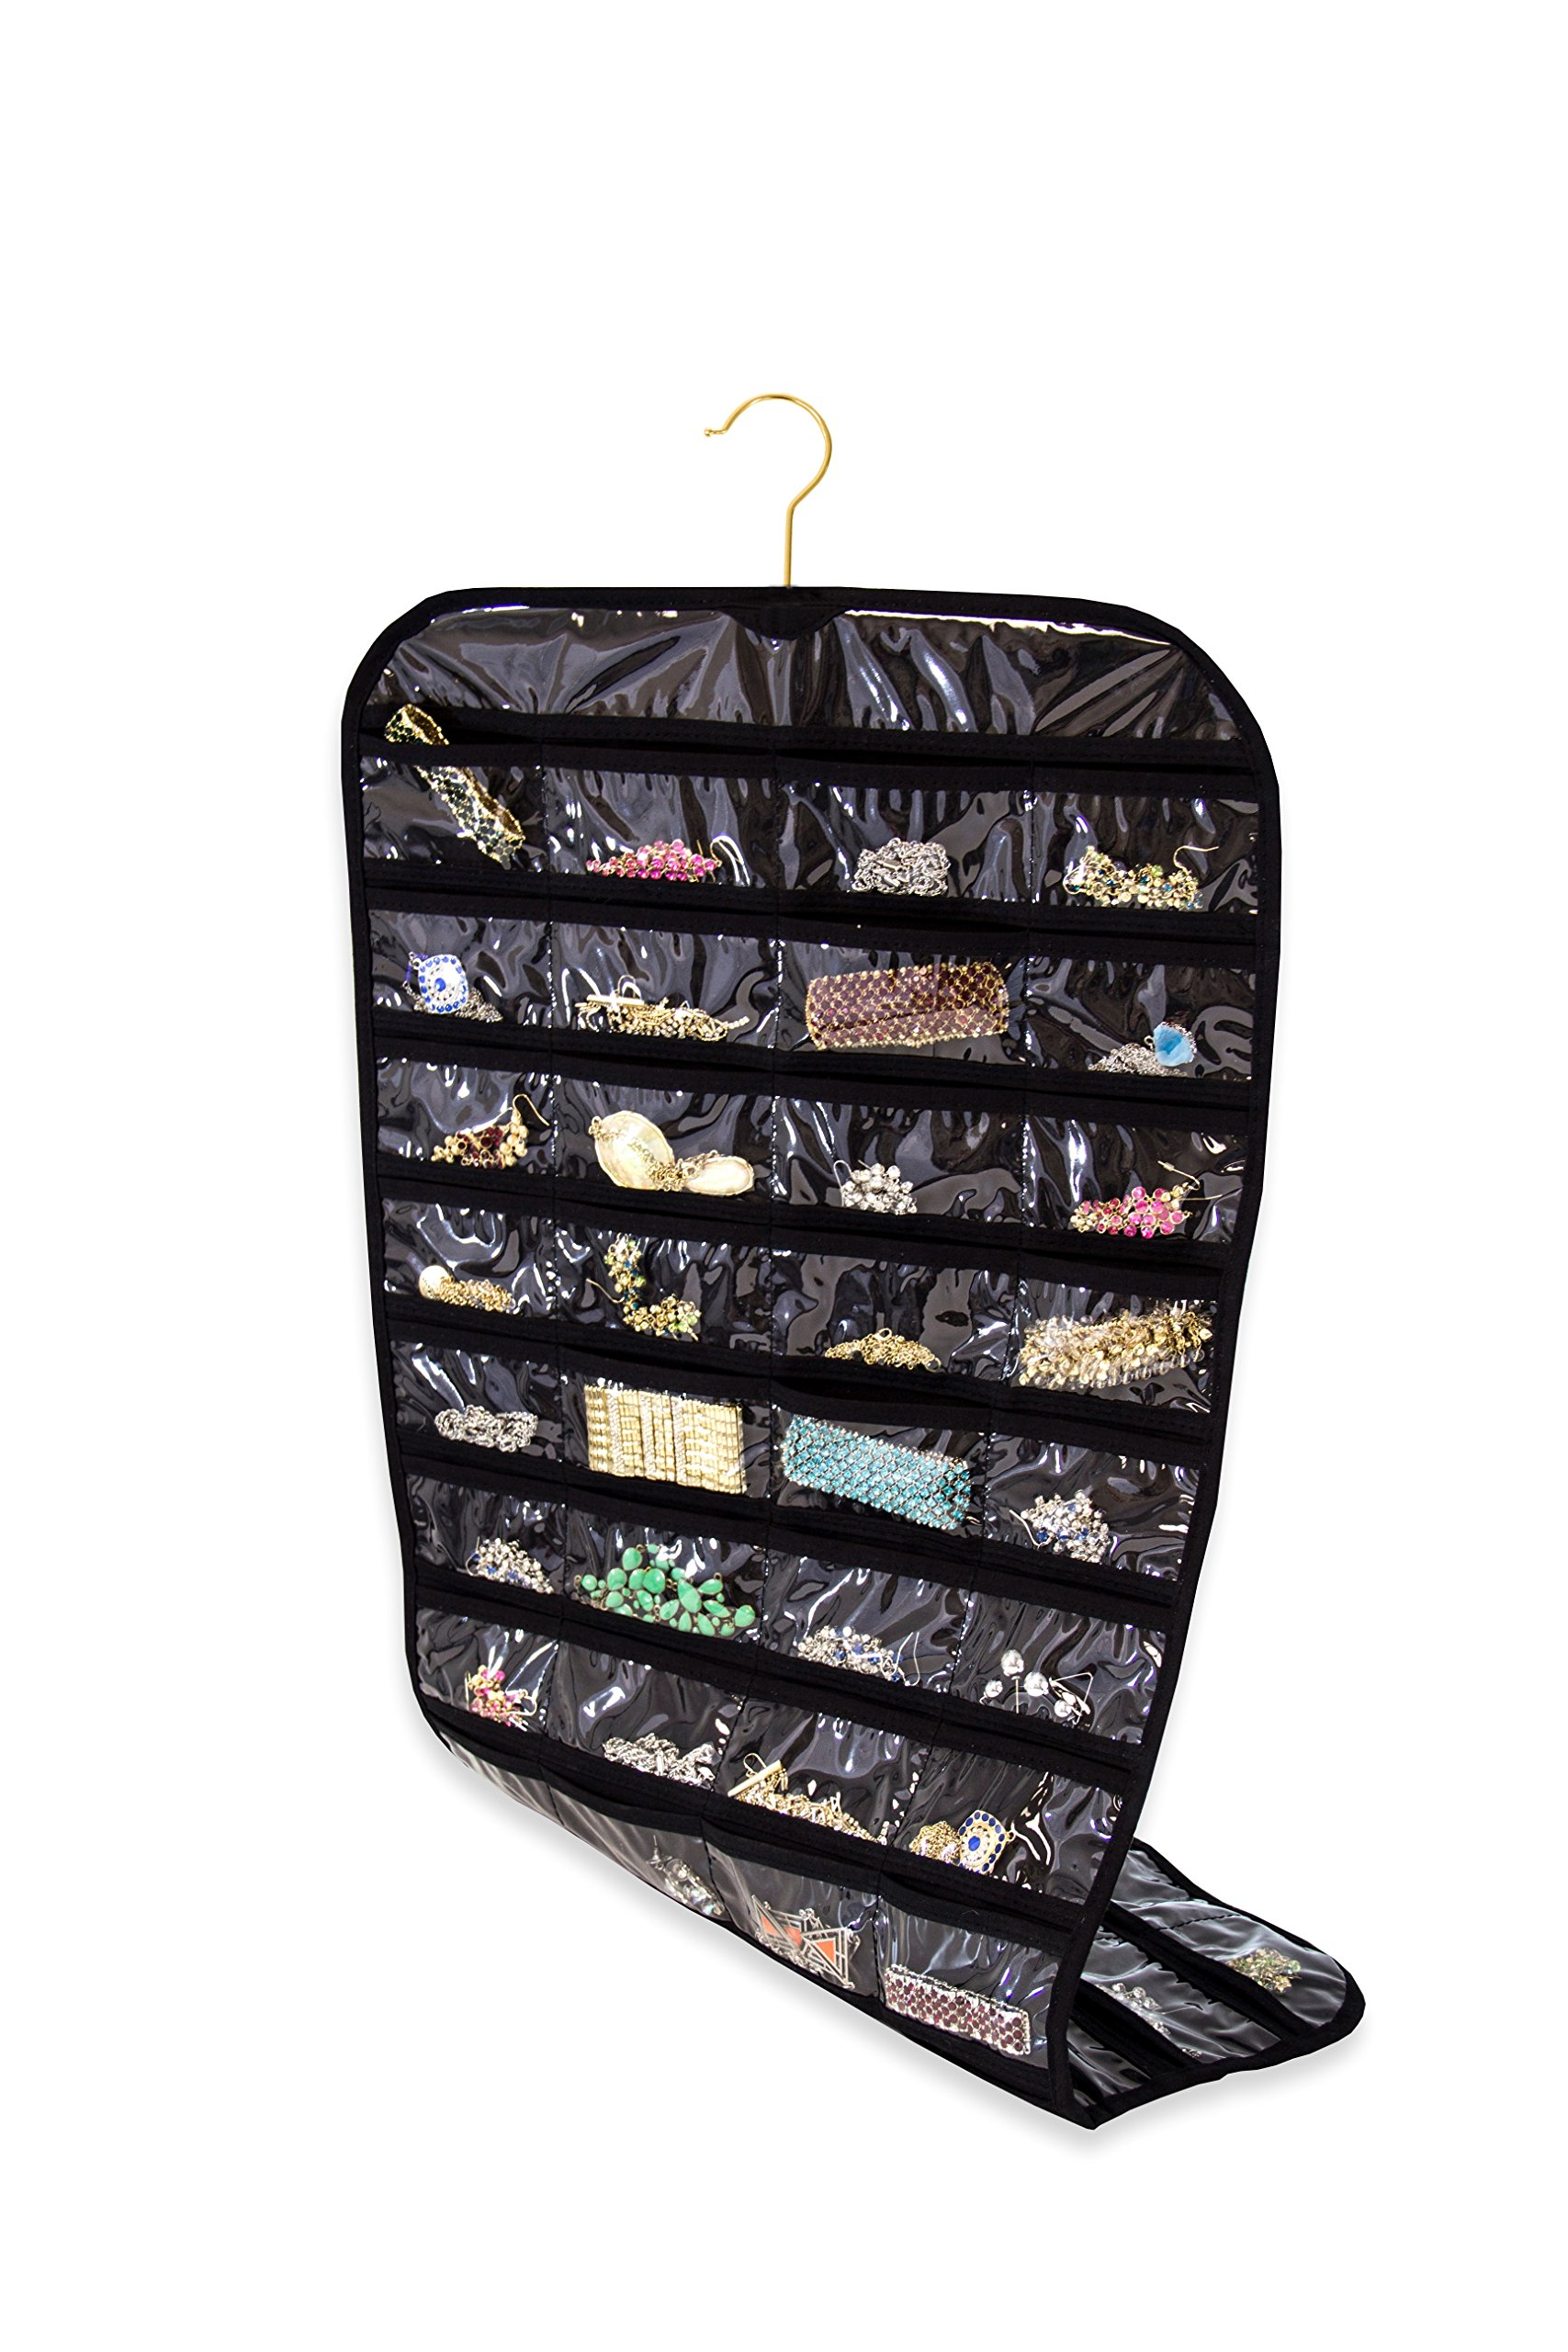 Closet Complete Premium Quality Canvas, Hanging Double Sided, 360 Degree Rotation, 80 Pockets | Best for Jewelry & Accessory Organization, Black